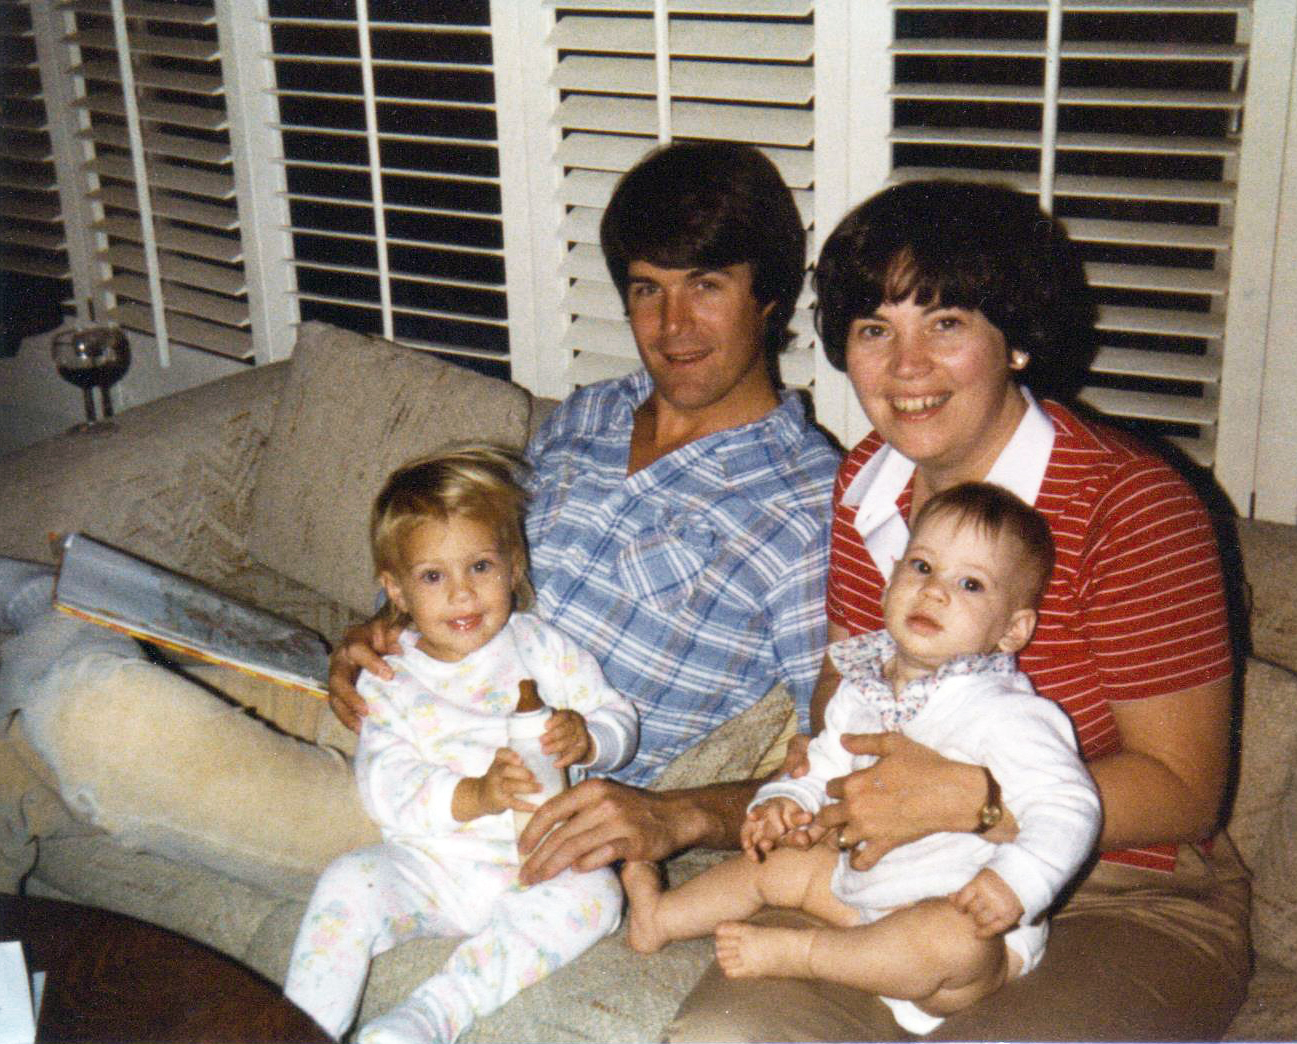 November 1981 - Casey holding Brittany (21 months) and Donna is holding Julie (8 months)